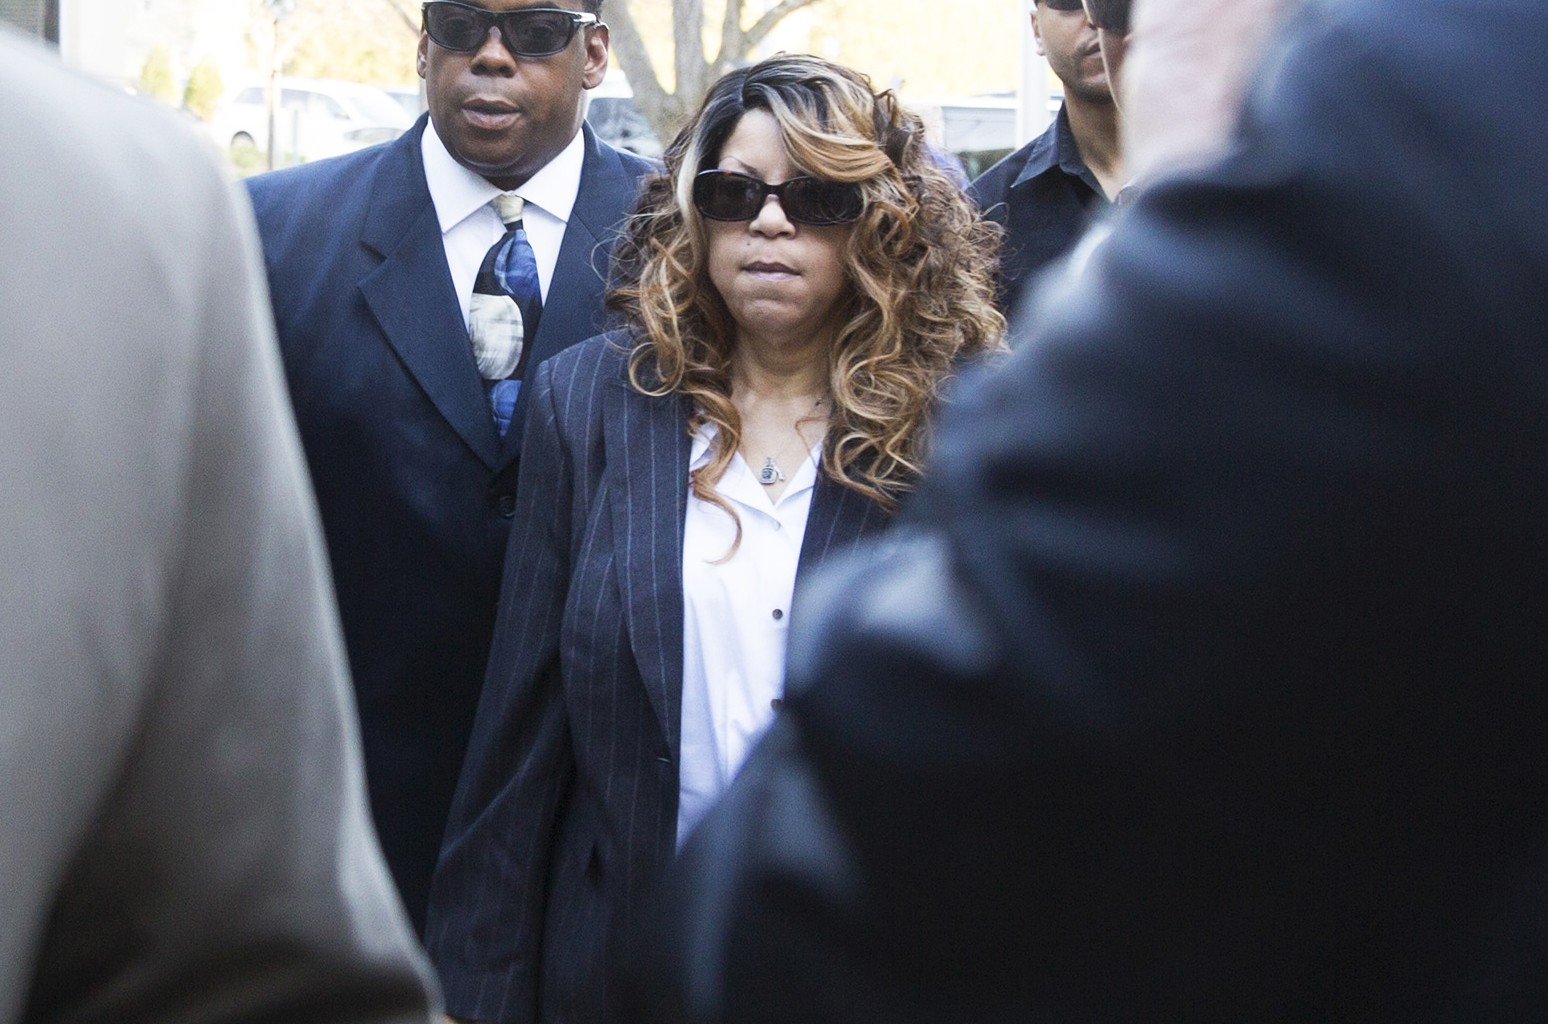 Tyka Nelson arrives at the Carver County Justice Center